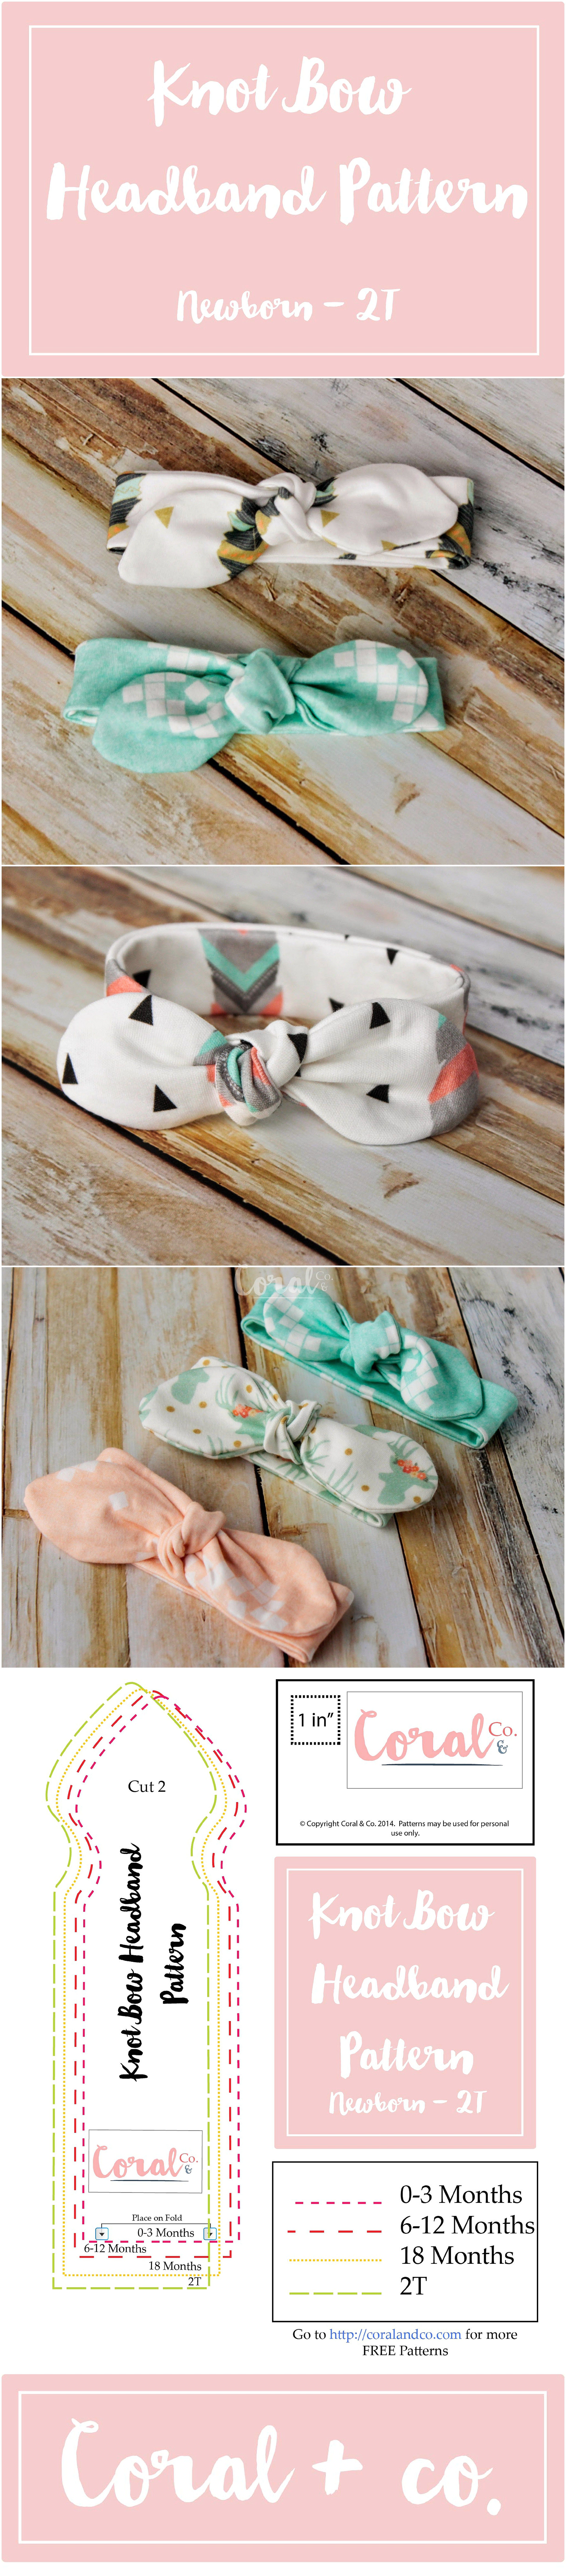 DIY Knot Bow Headband Pattern for Babies and Toddlers - Free ...